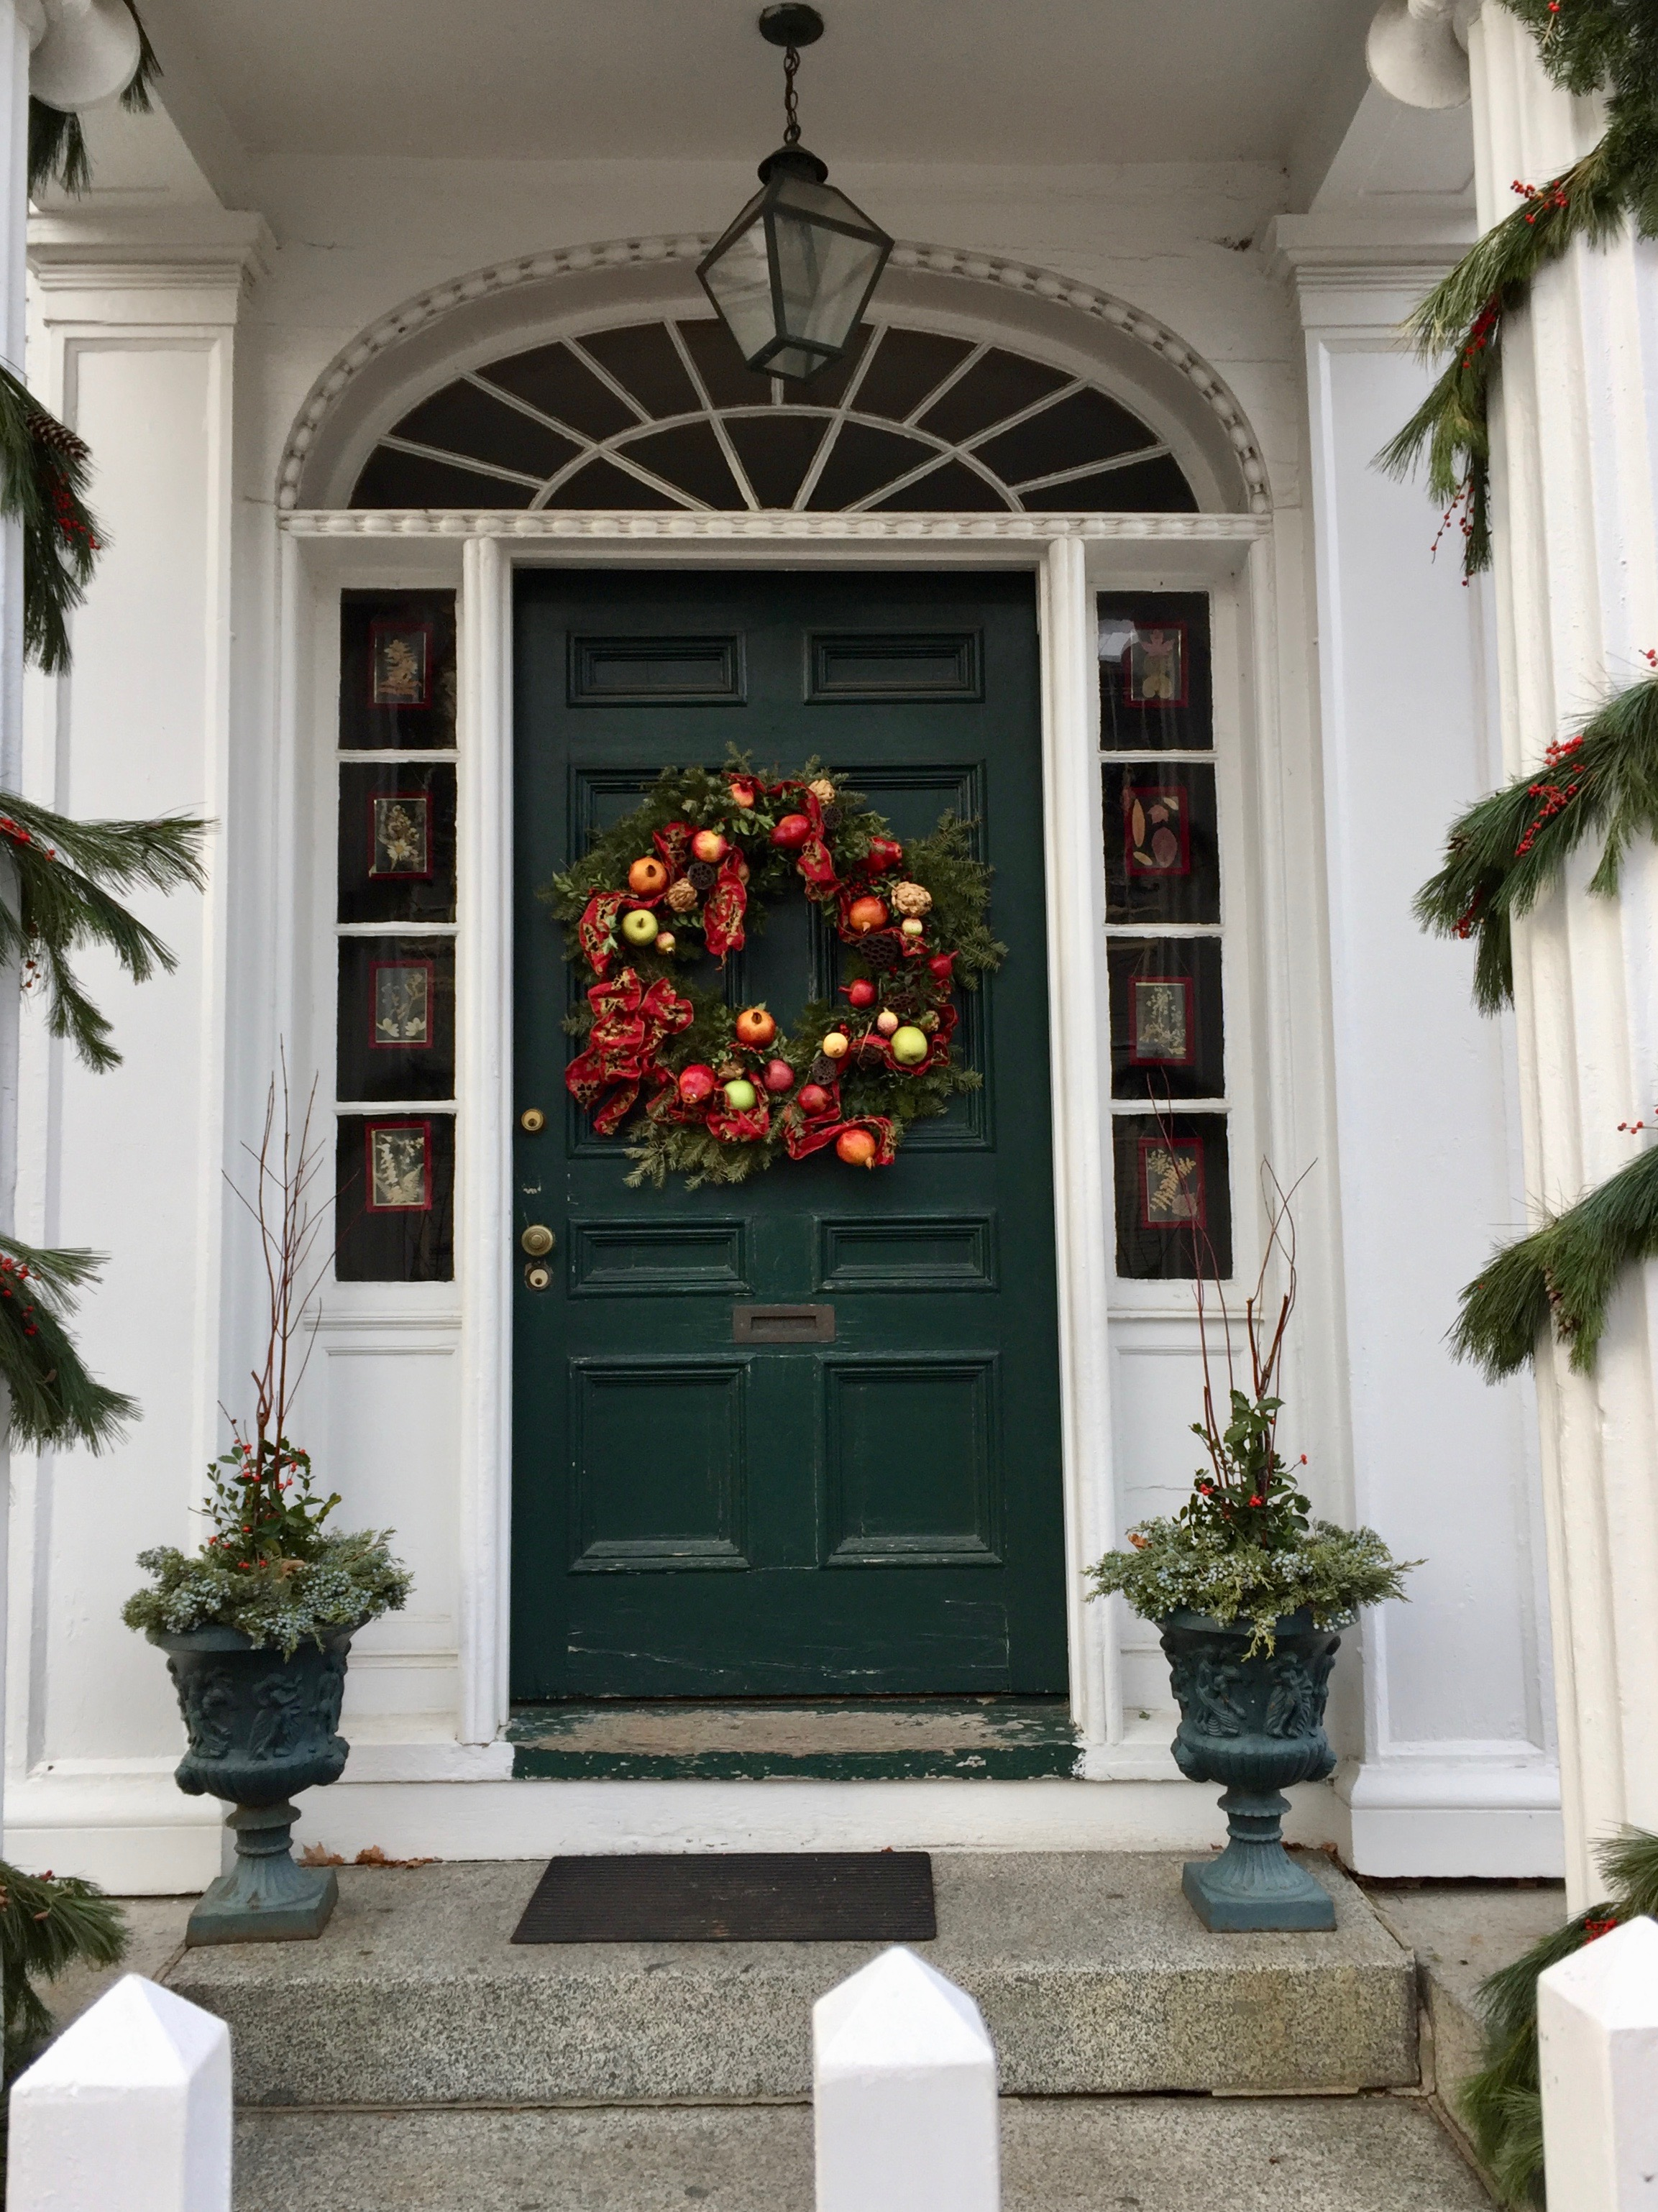 Christmas Wreath ideas from New England - portsmouth nh 9.jpg